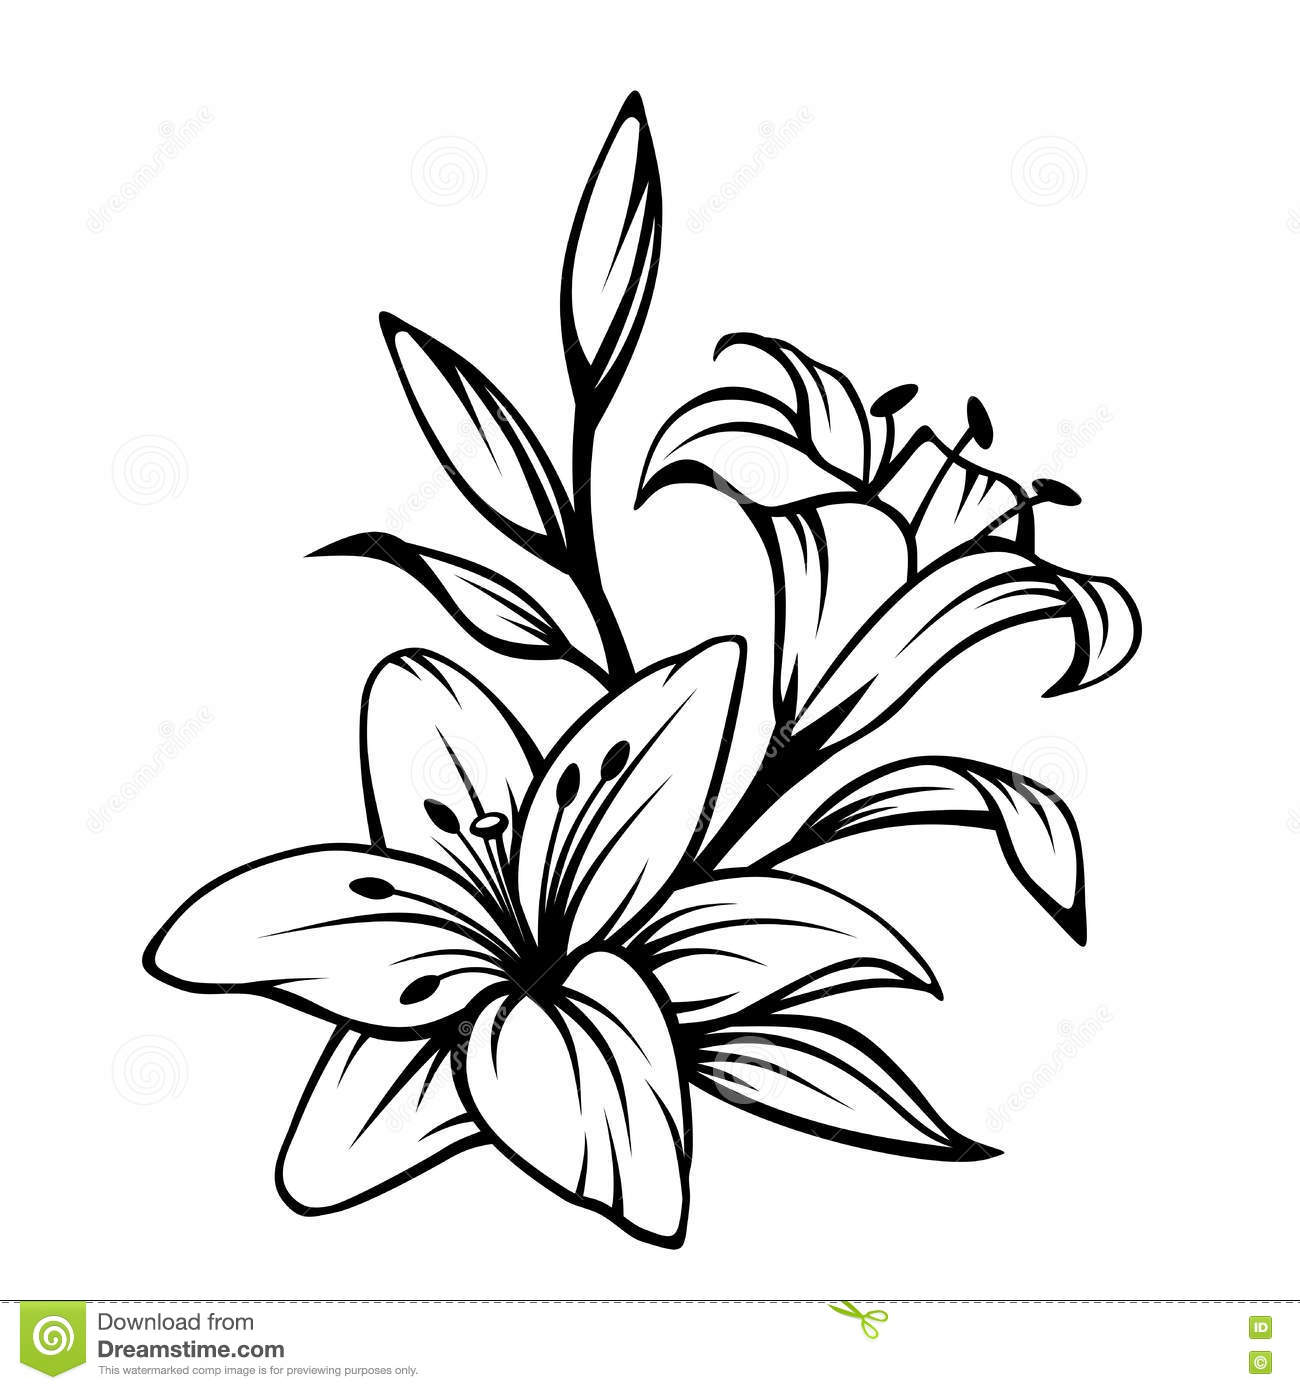 Black And White Lily Outline | www.imgkid.com - The Image ...